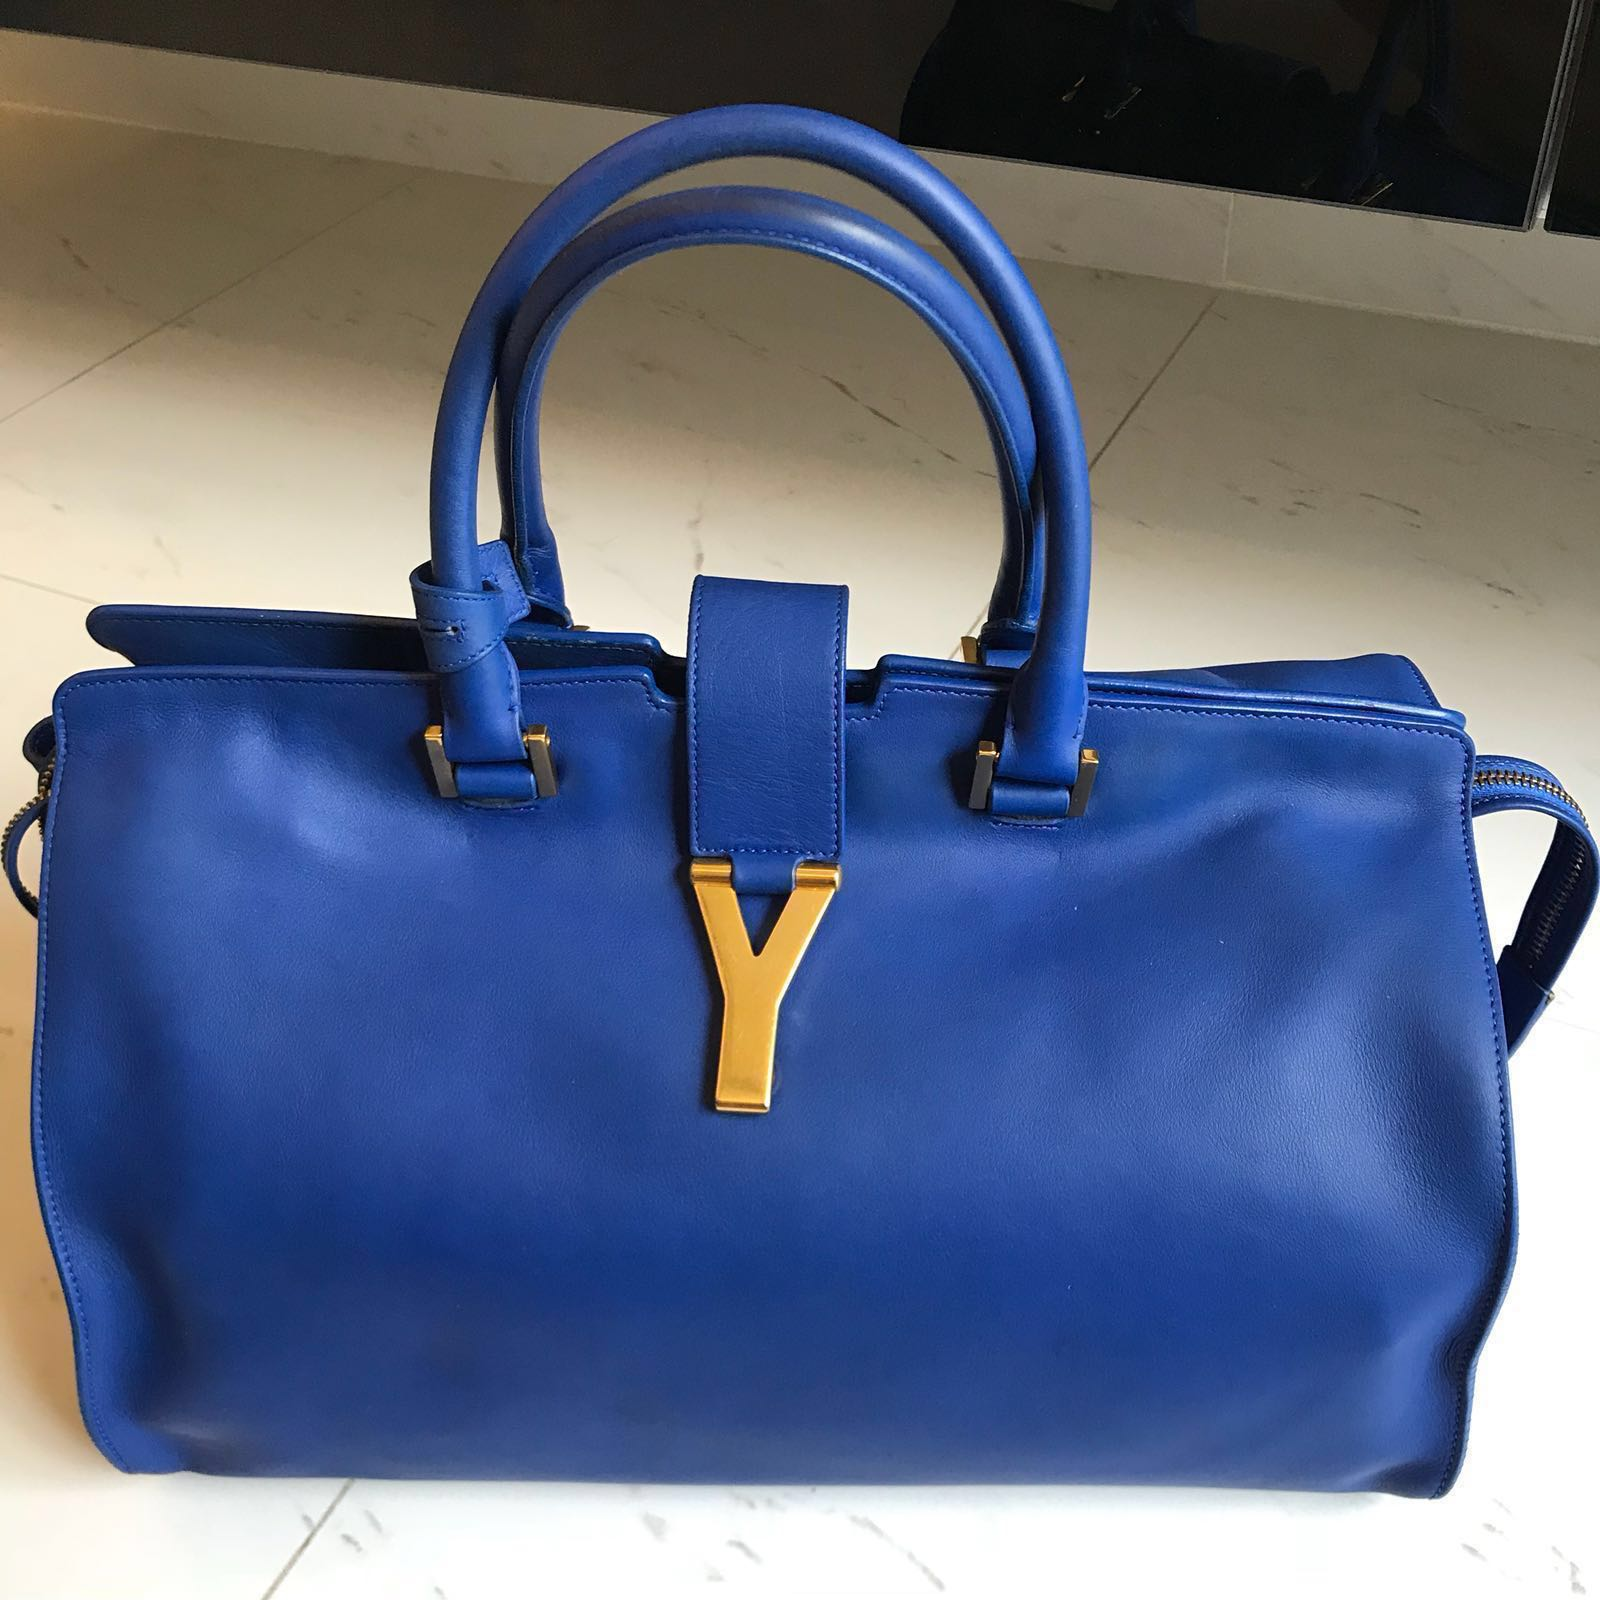 118e0fd565d8 Yves Saint Laurent YSL Cabas Chyc bag in Royal Cobalt Blue (Large ...